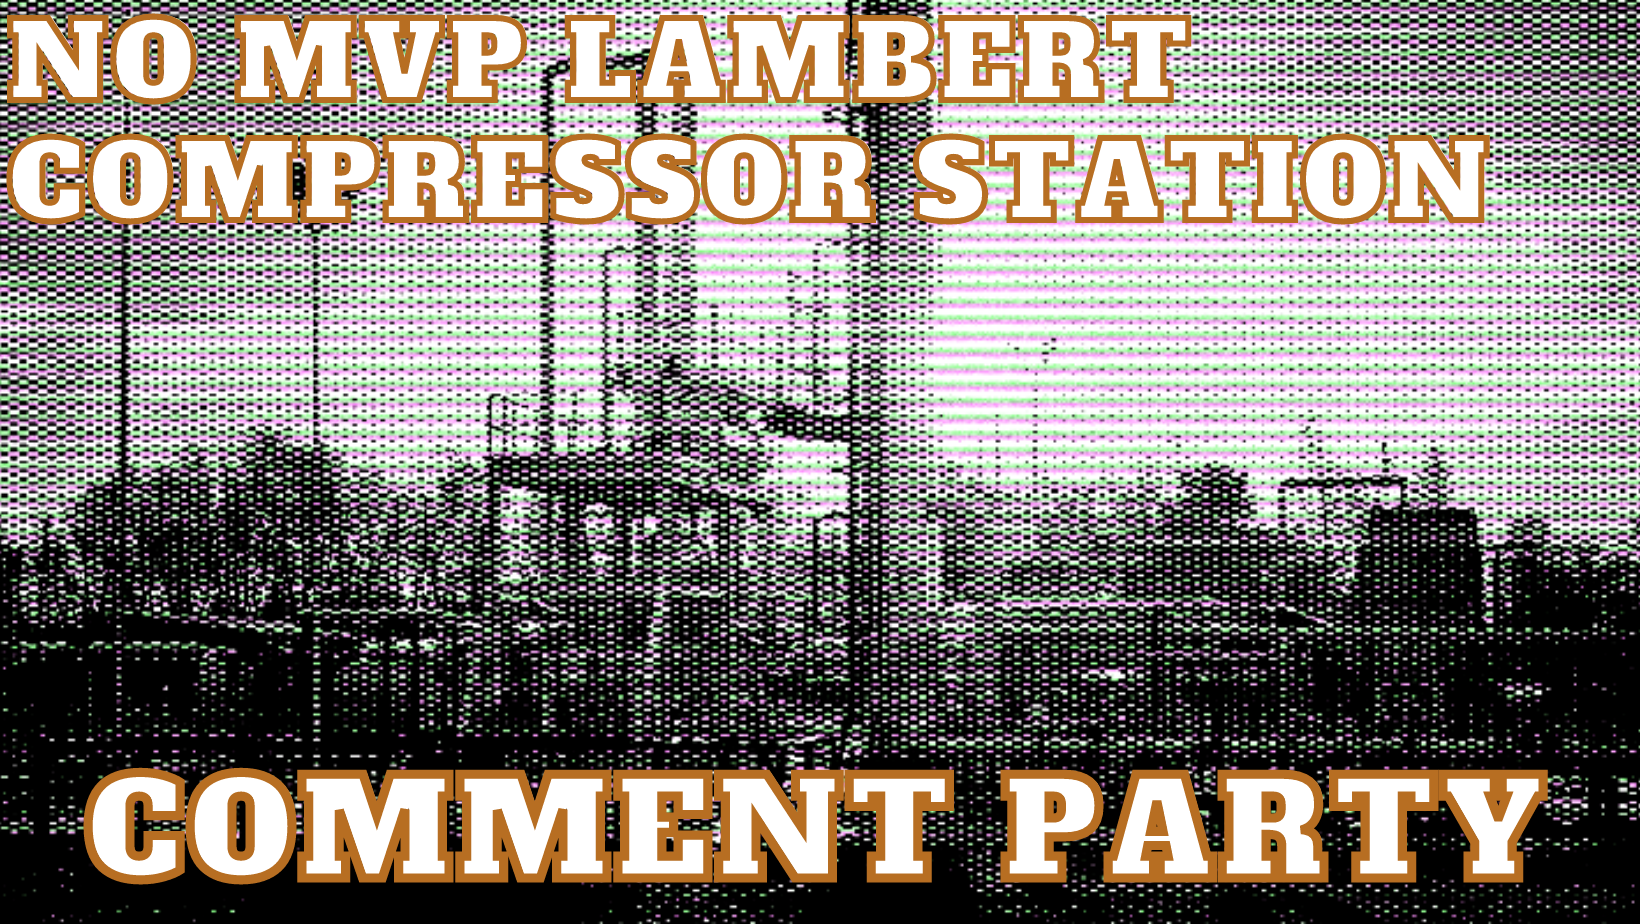 No MVP Lambert Compressor Station Comment Party